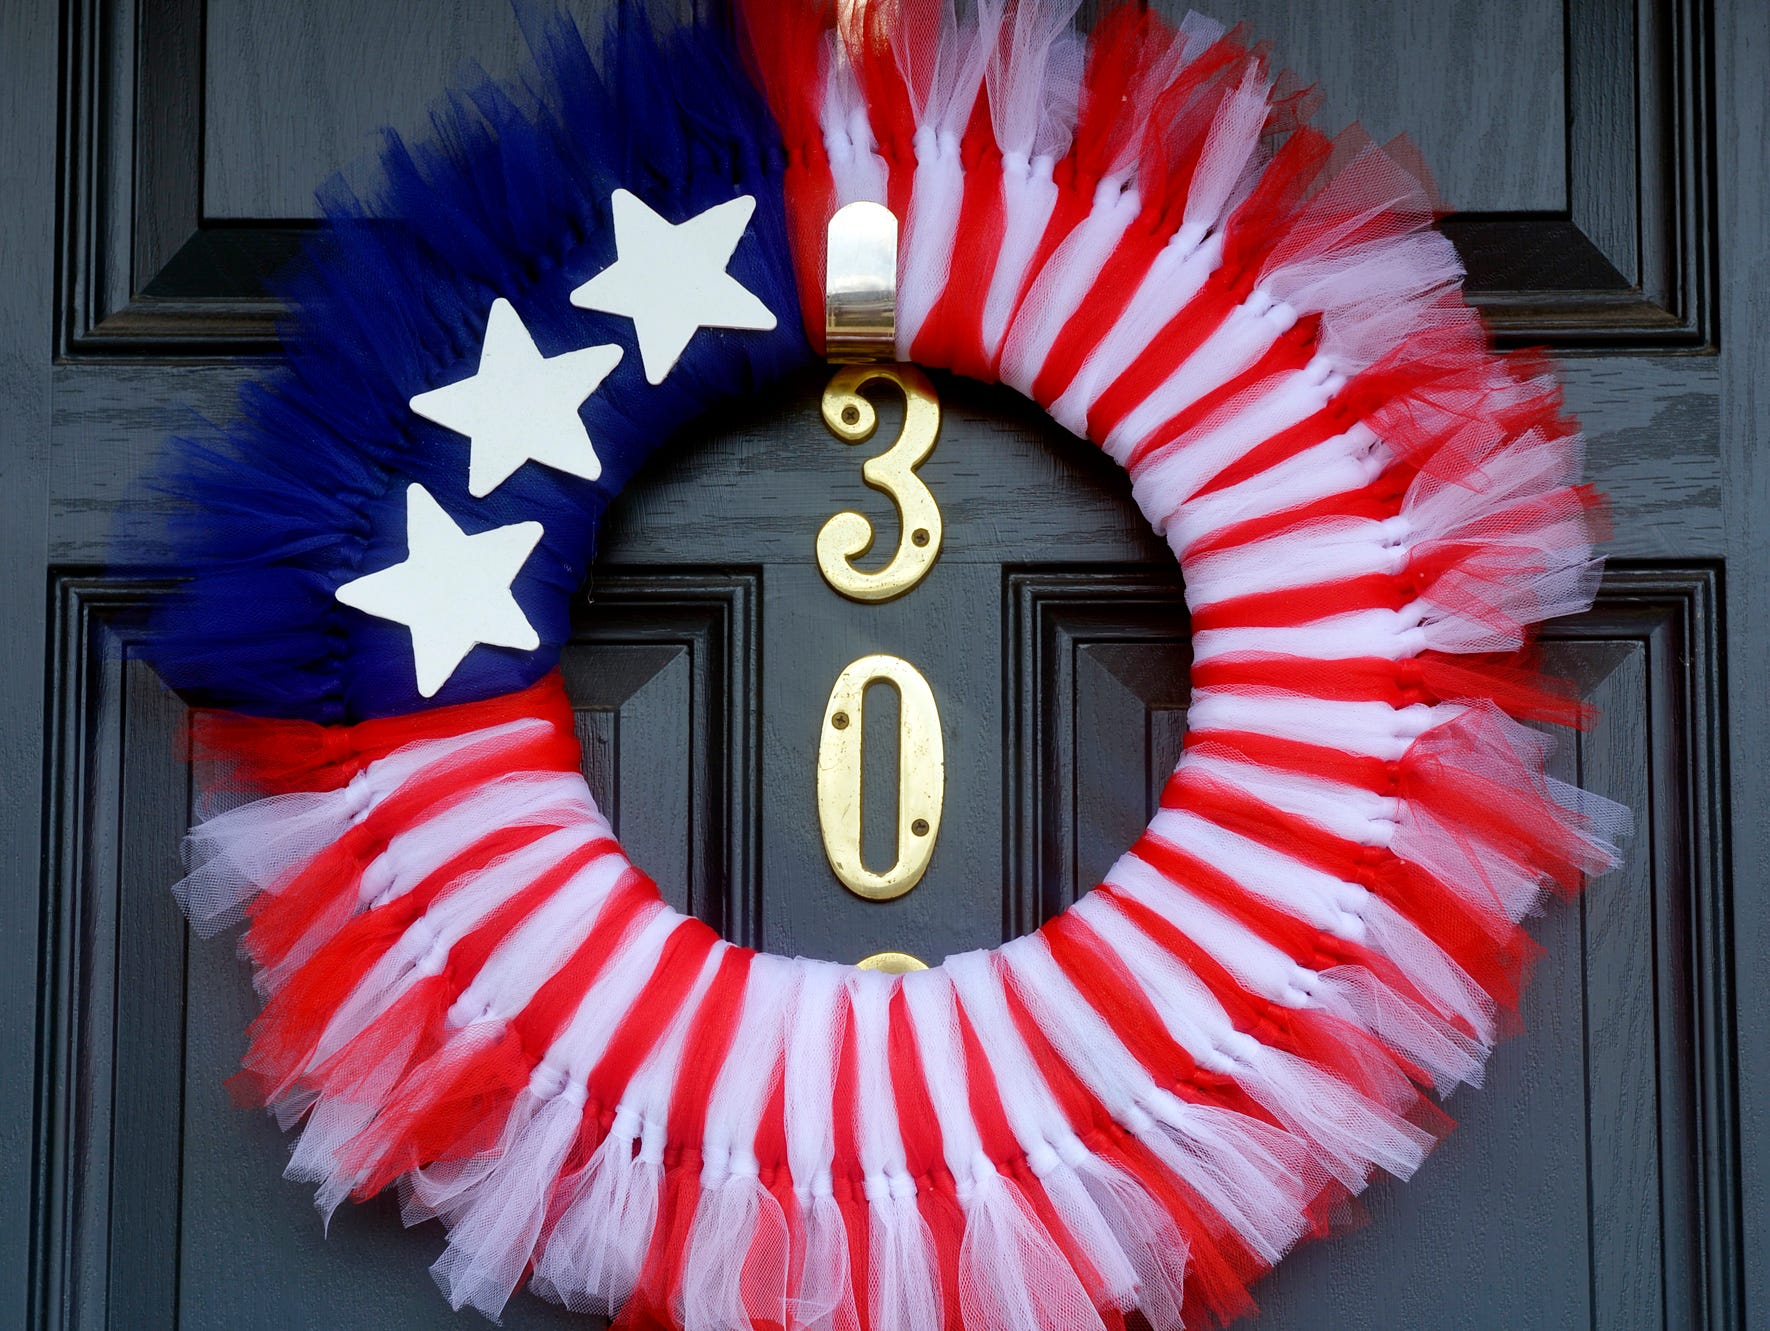 This is a great way to decorate your door for Memorial Day, Fourth of July, Flag Day or every day.